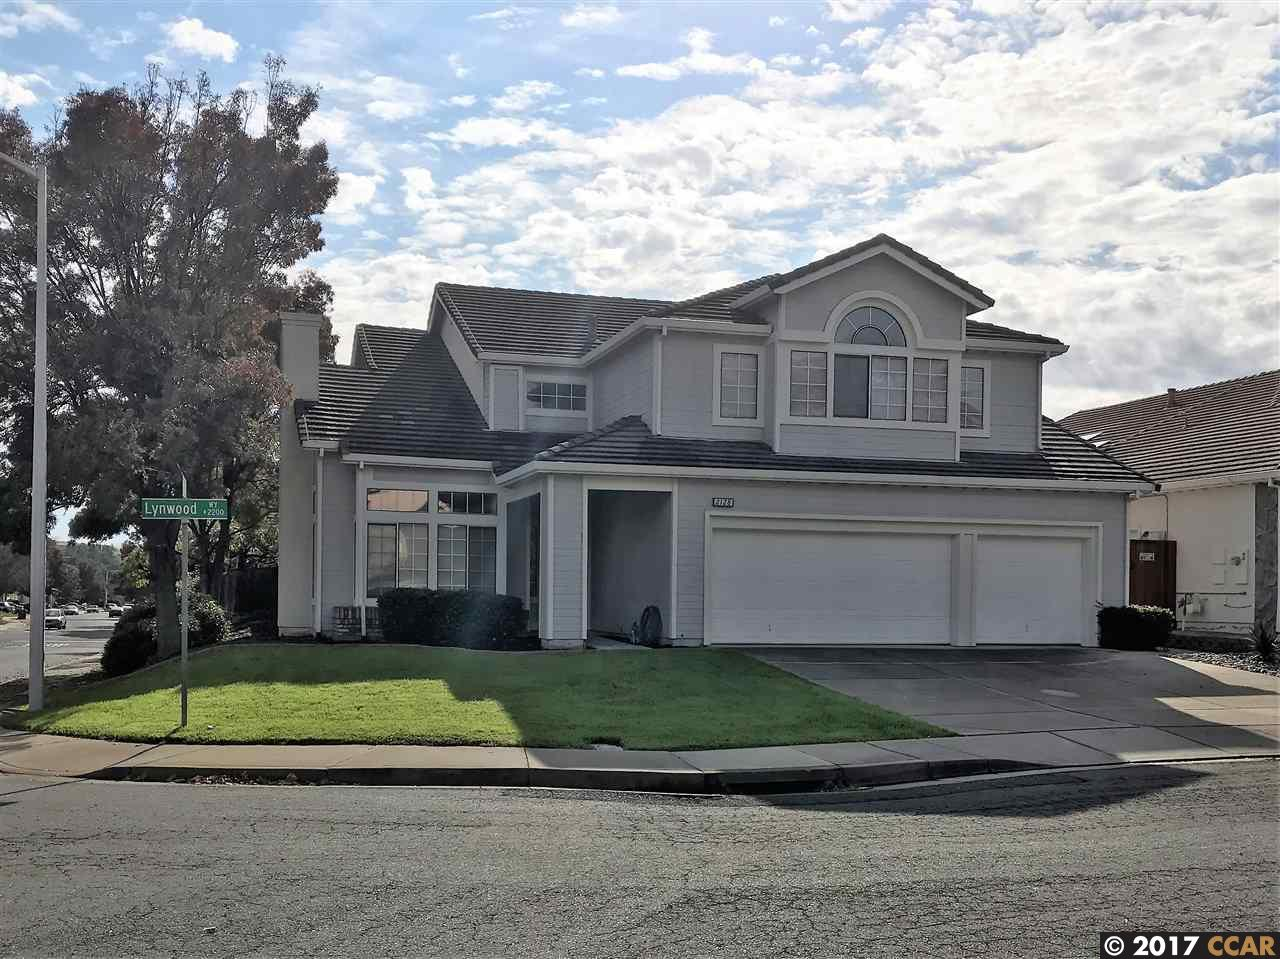 2128 Lynwood Way, ANTIOCH, CA 94509